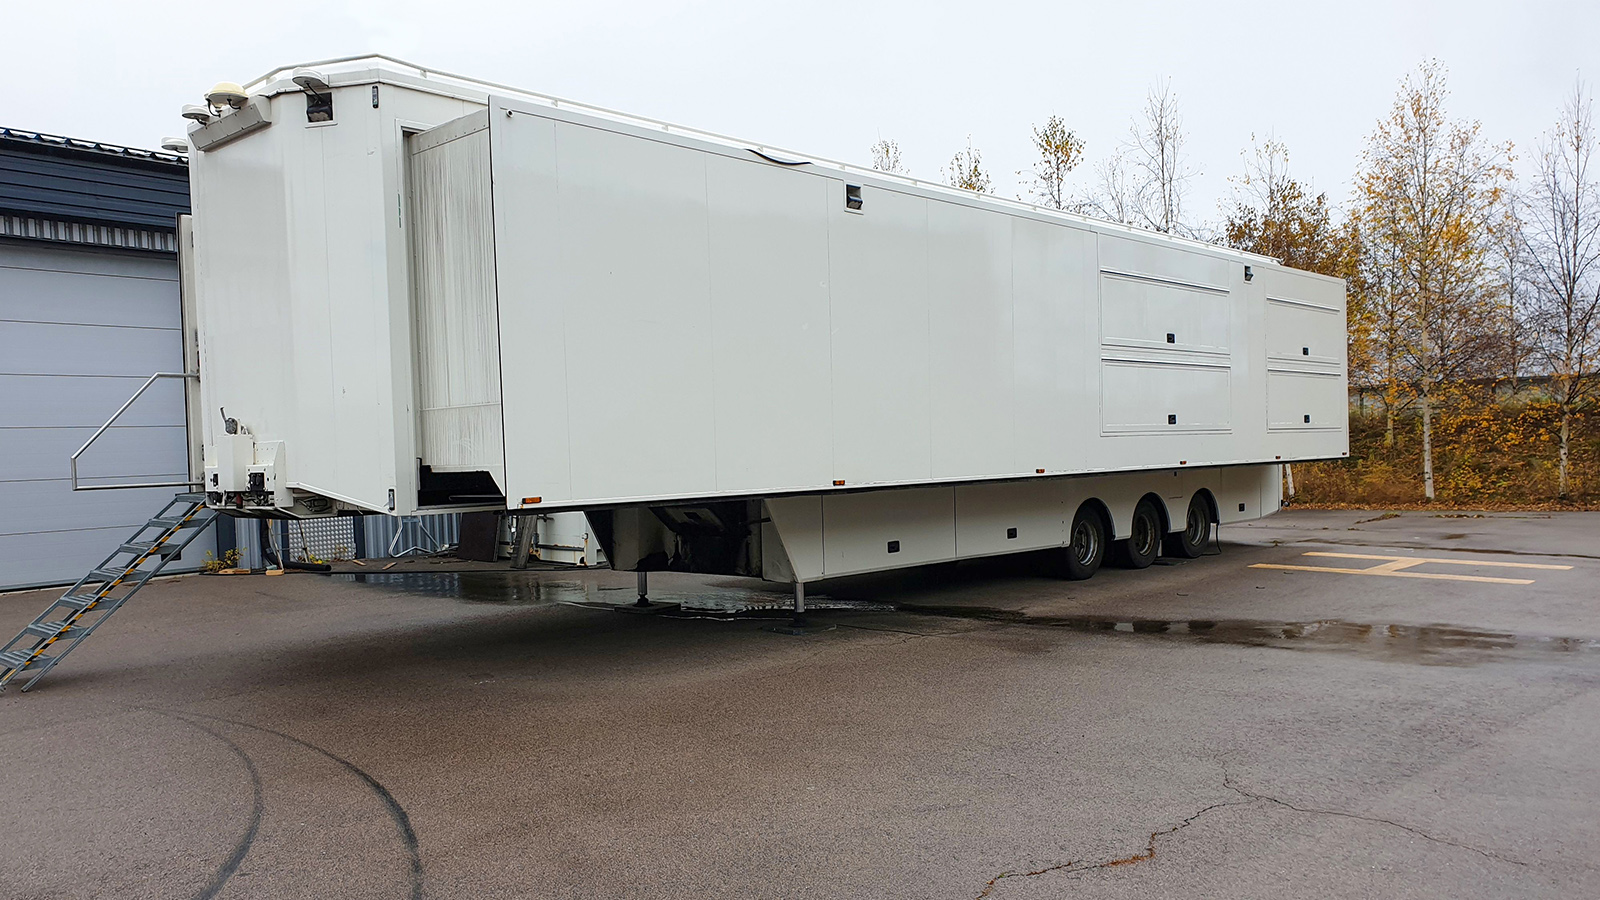 24-CAMERA RACK READY DOUBLE EXPANDING TRAILER - Image #1